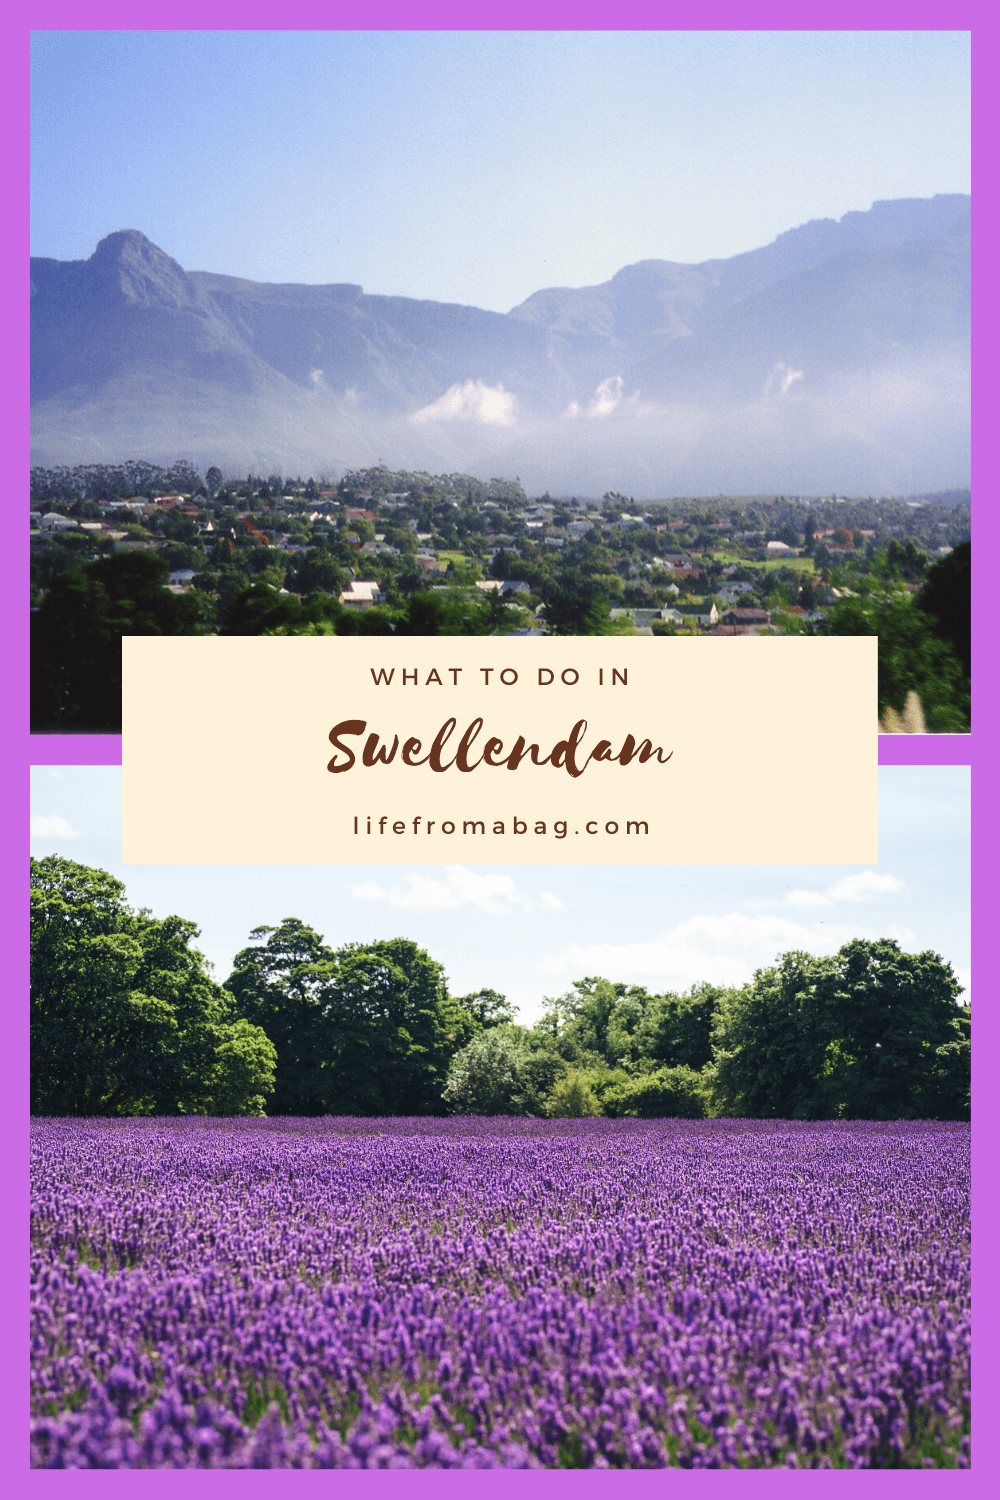 What to do in Swellendam